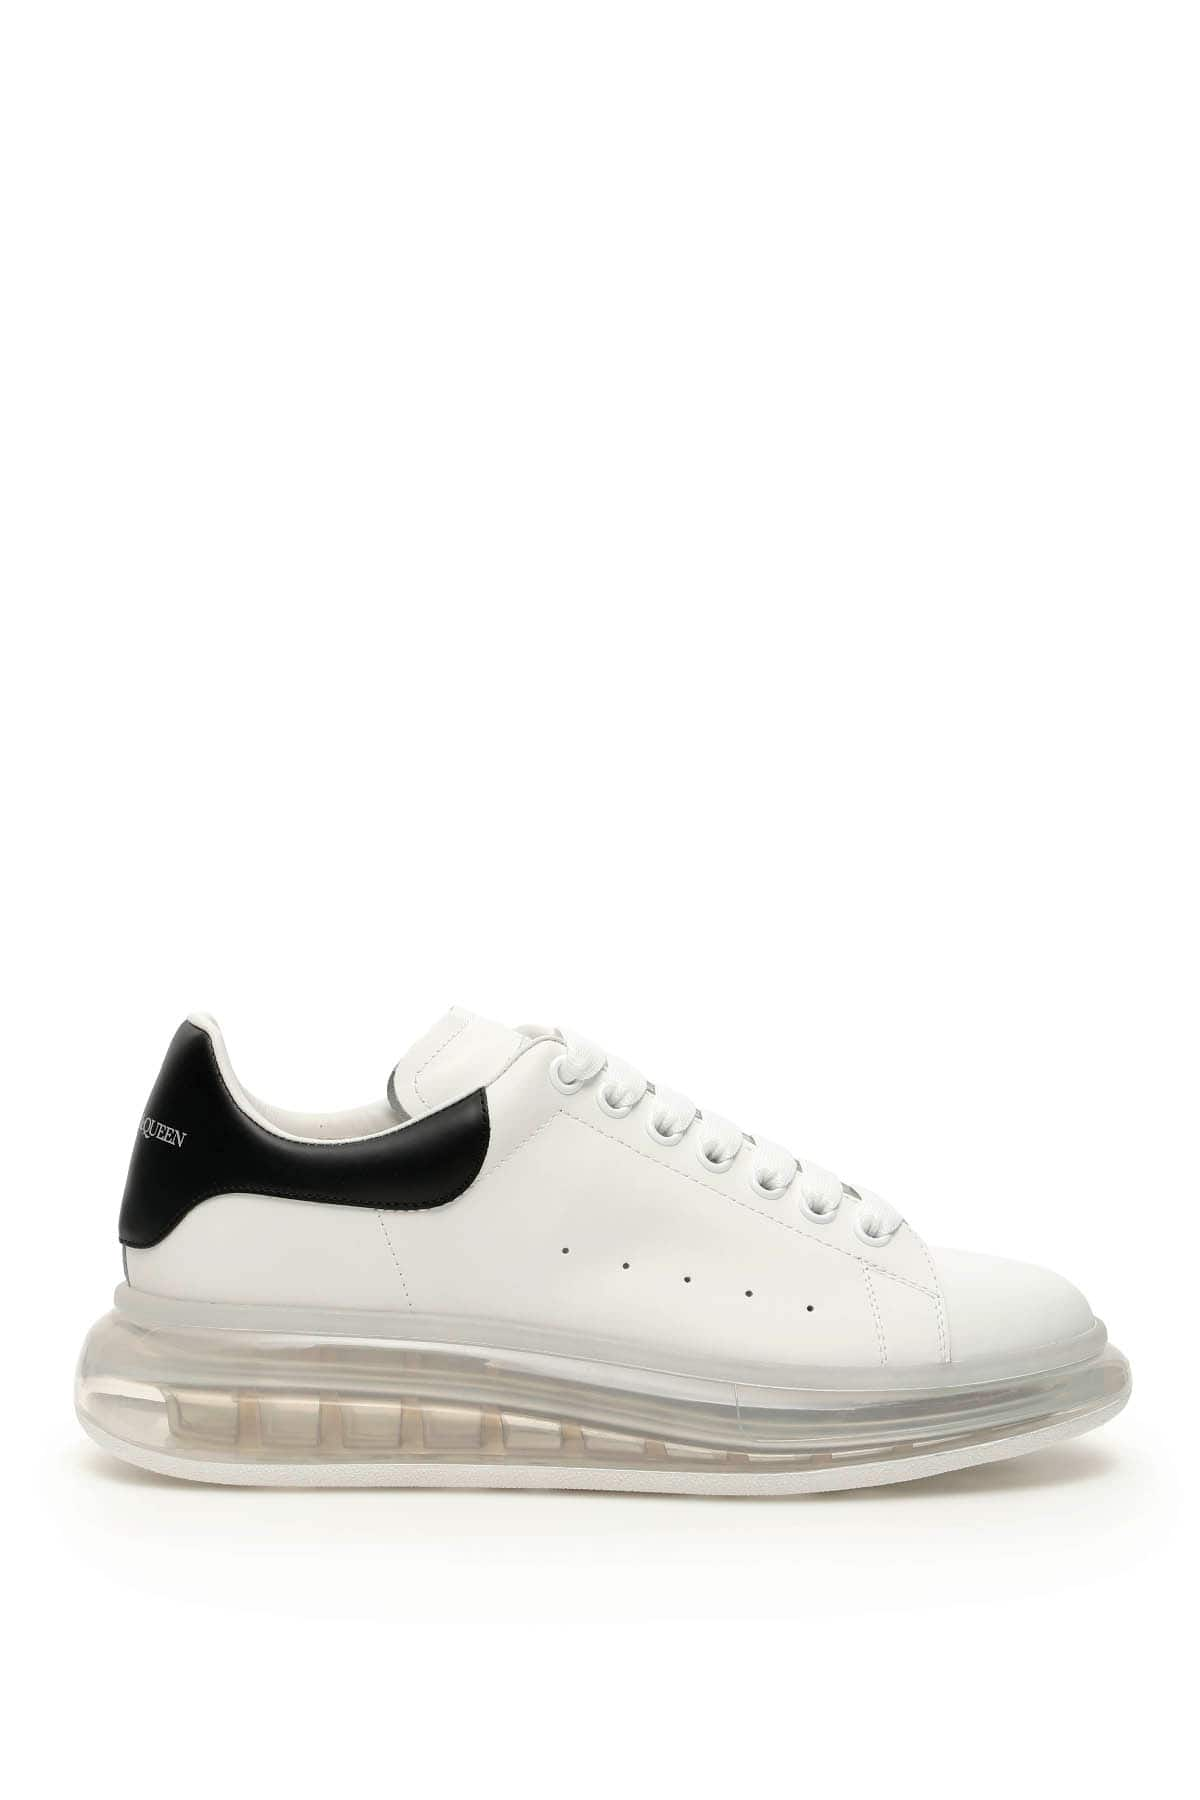 ALEXANDER MCQUEEN OVERSIZED SNEAKERS 42 White, Black Leather